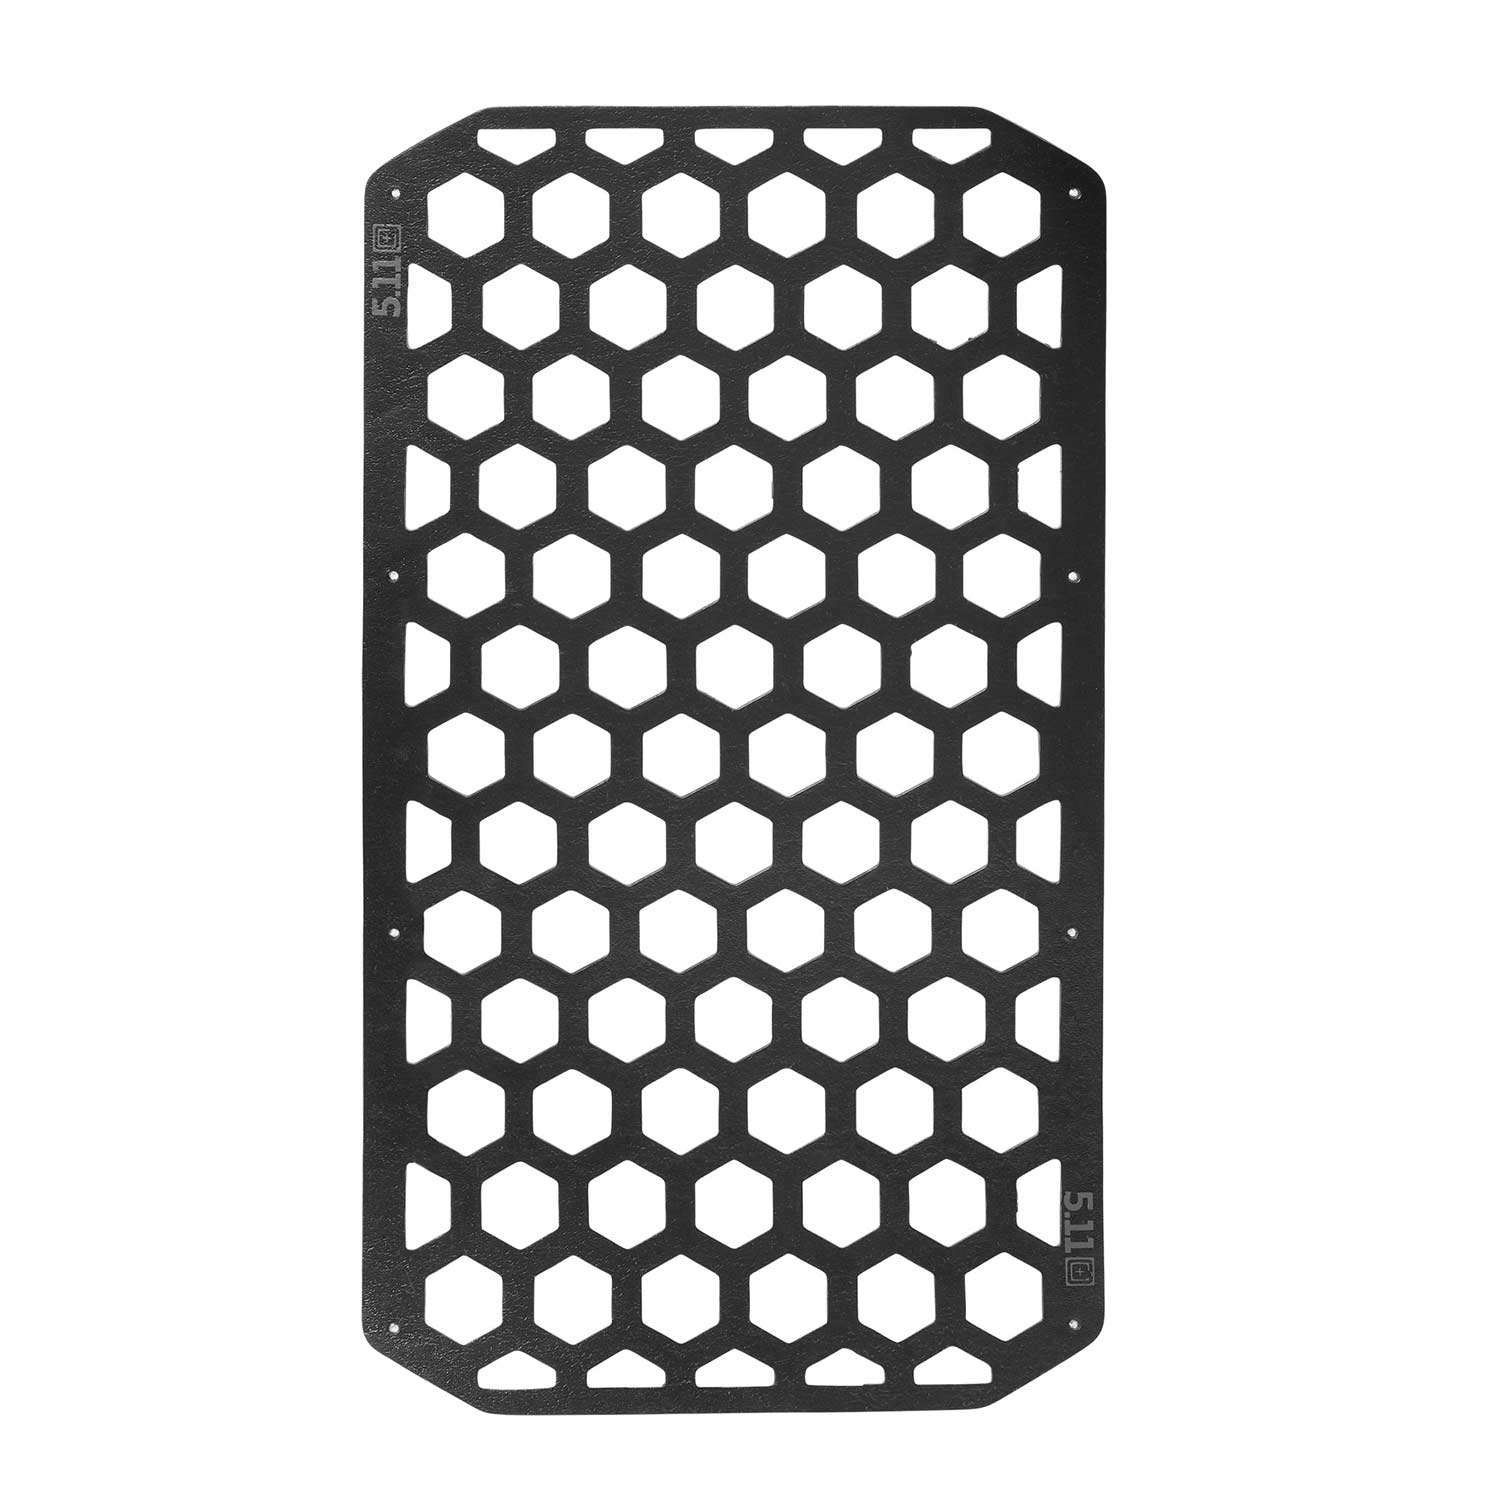 5.11 Tactical HEXGRID Insert